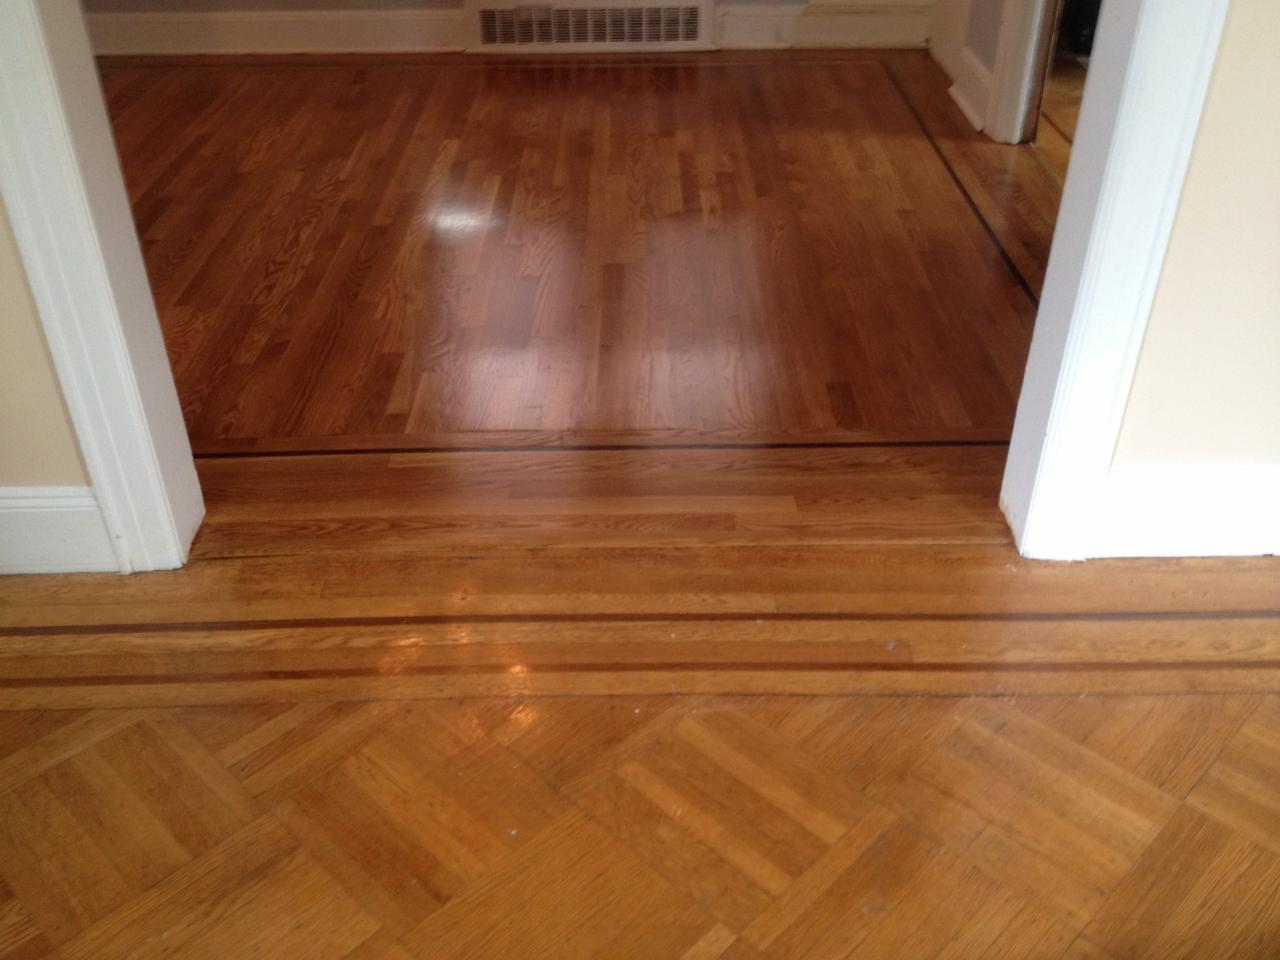 Floor refinishing long island callahan brothers floors inc for Sanding hardwood floors